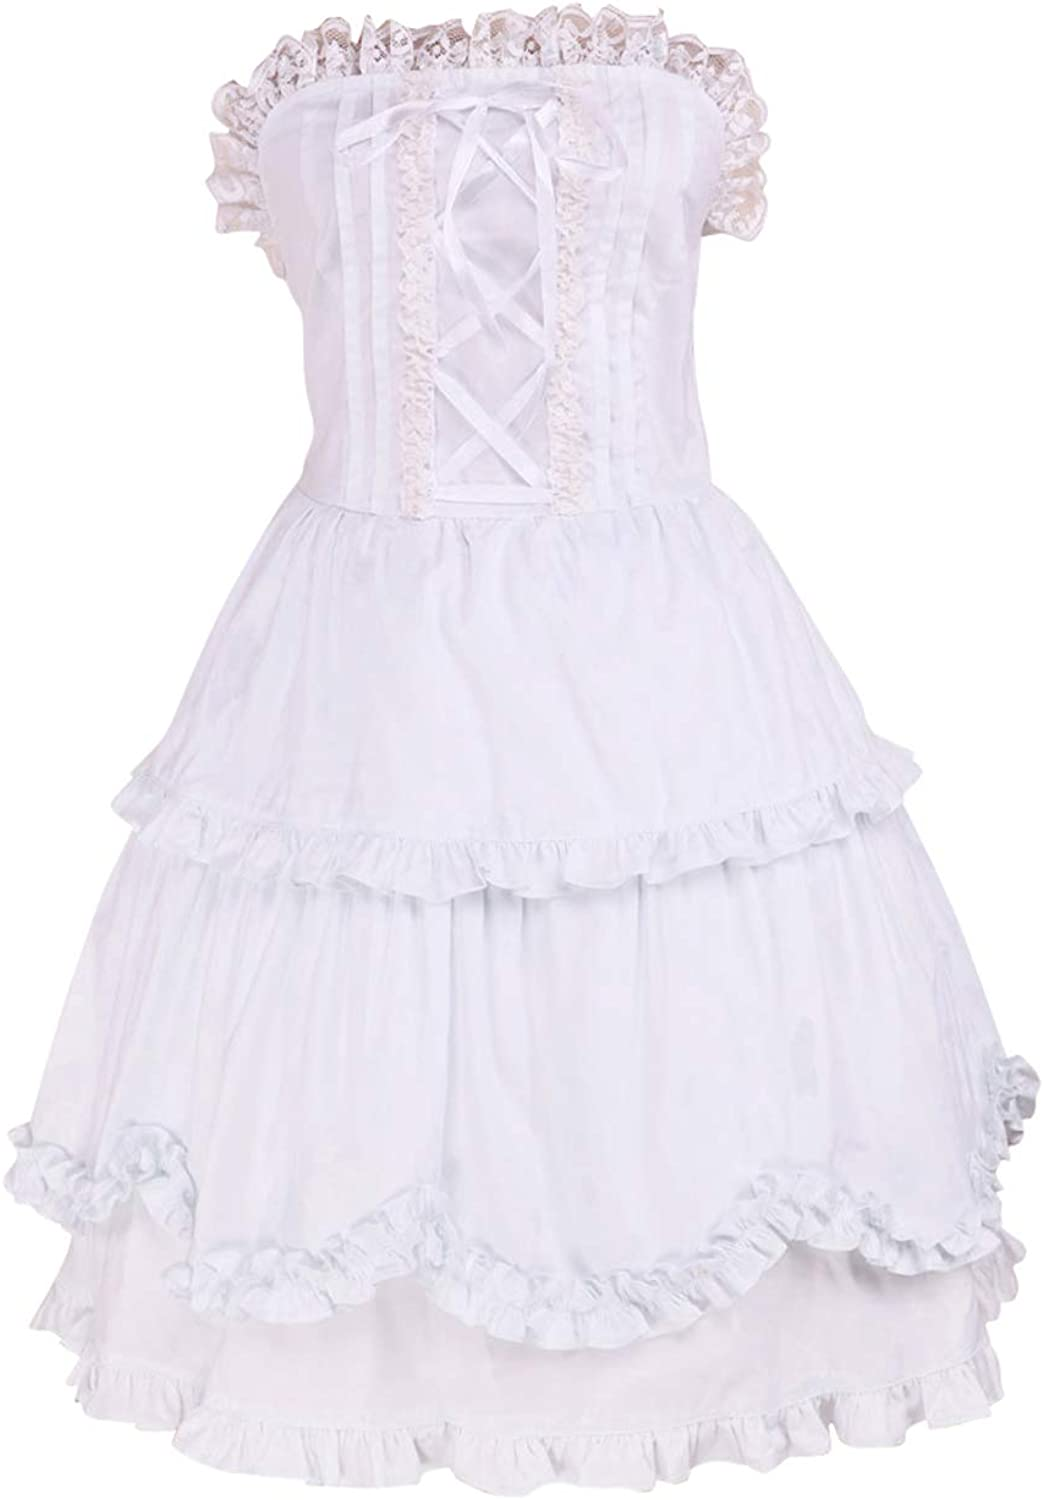 Antaina White Cotton Ruffle Lace Sexy Backless Victorian Lolita Cosplay Dress